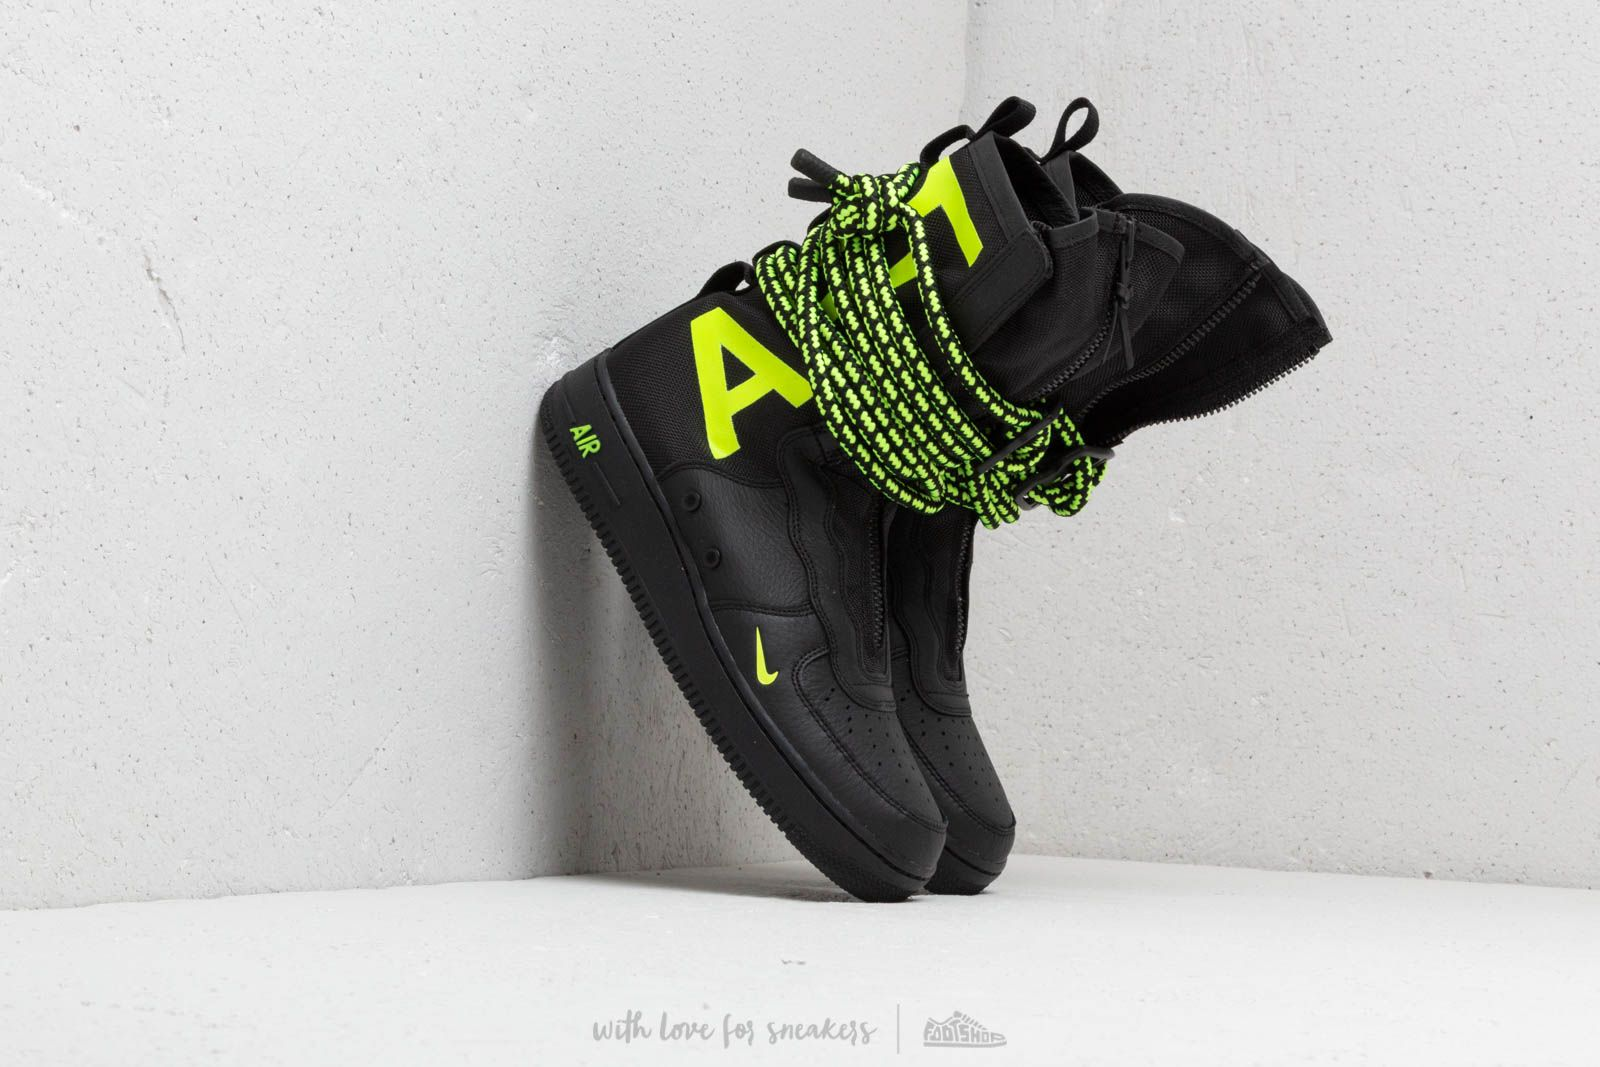 Nike Air Force 1 SF Hi Black  Volt-Black  b77f5be3ced5